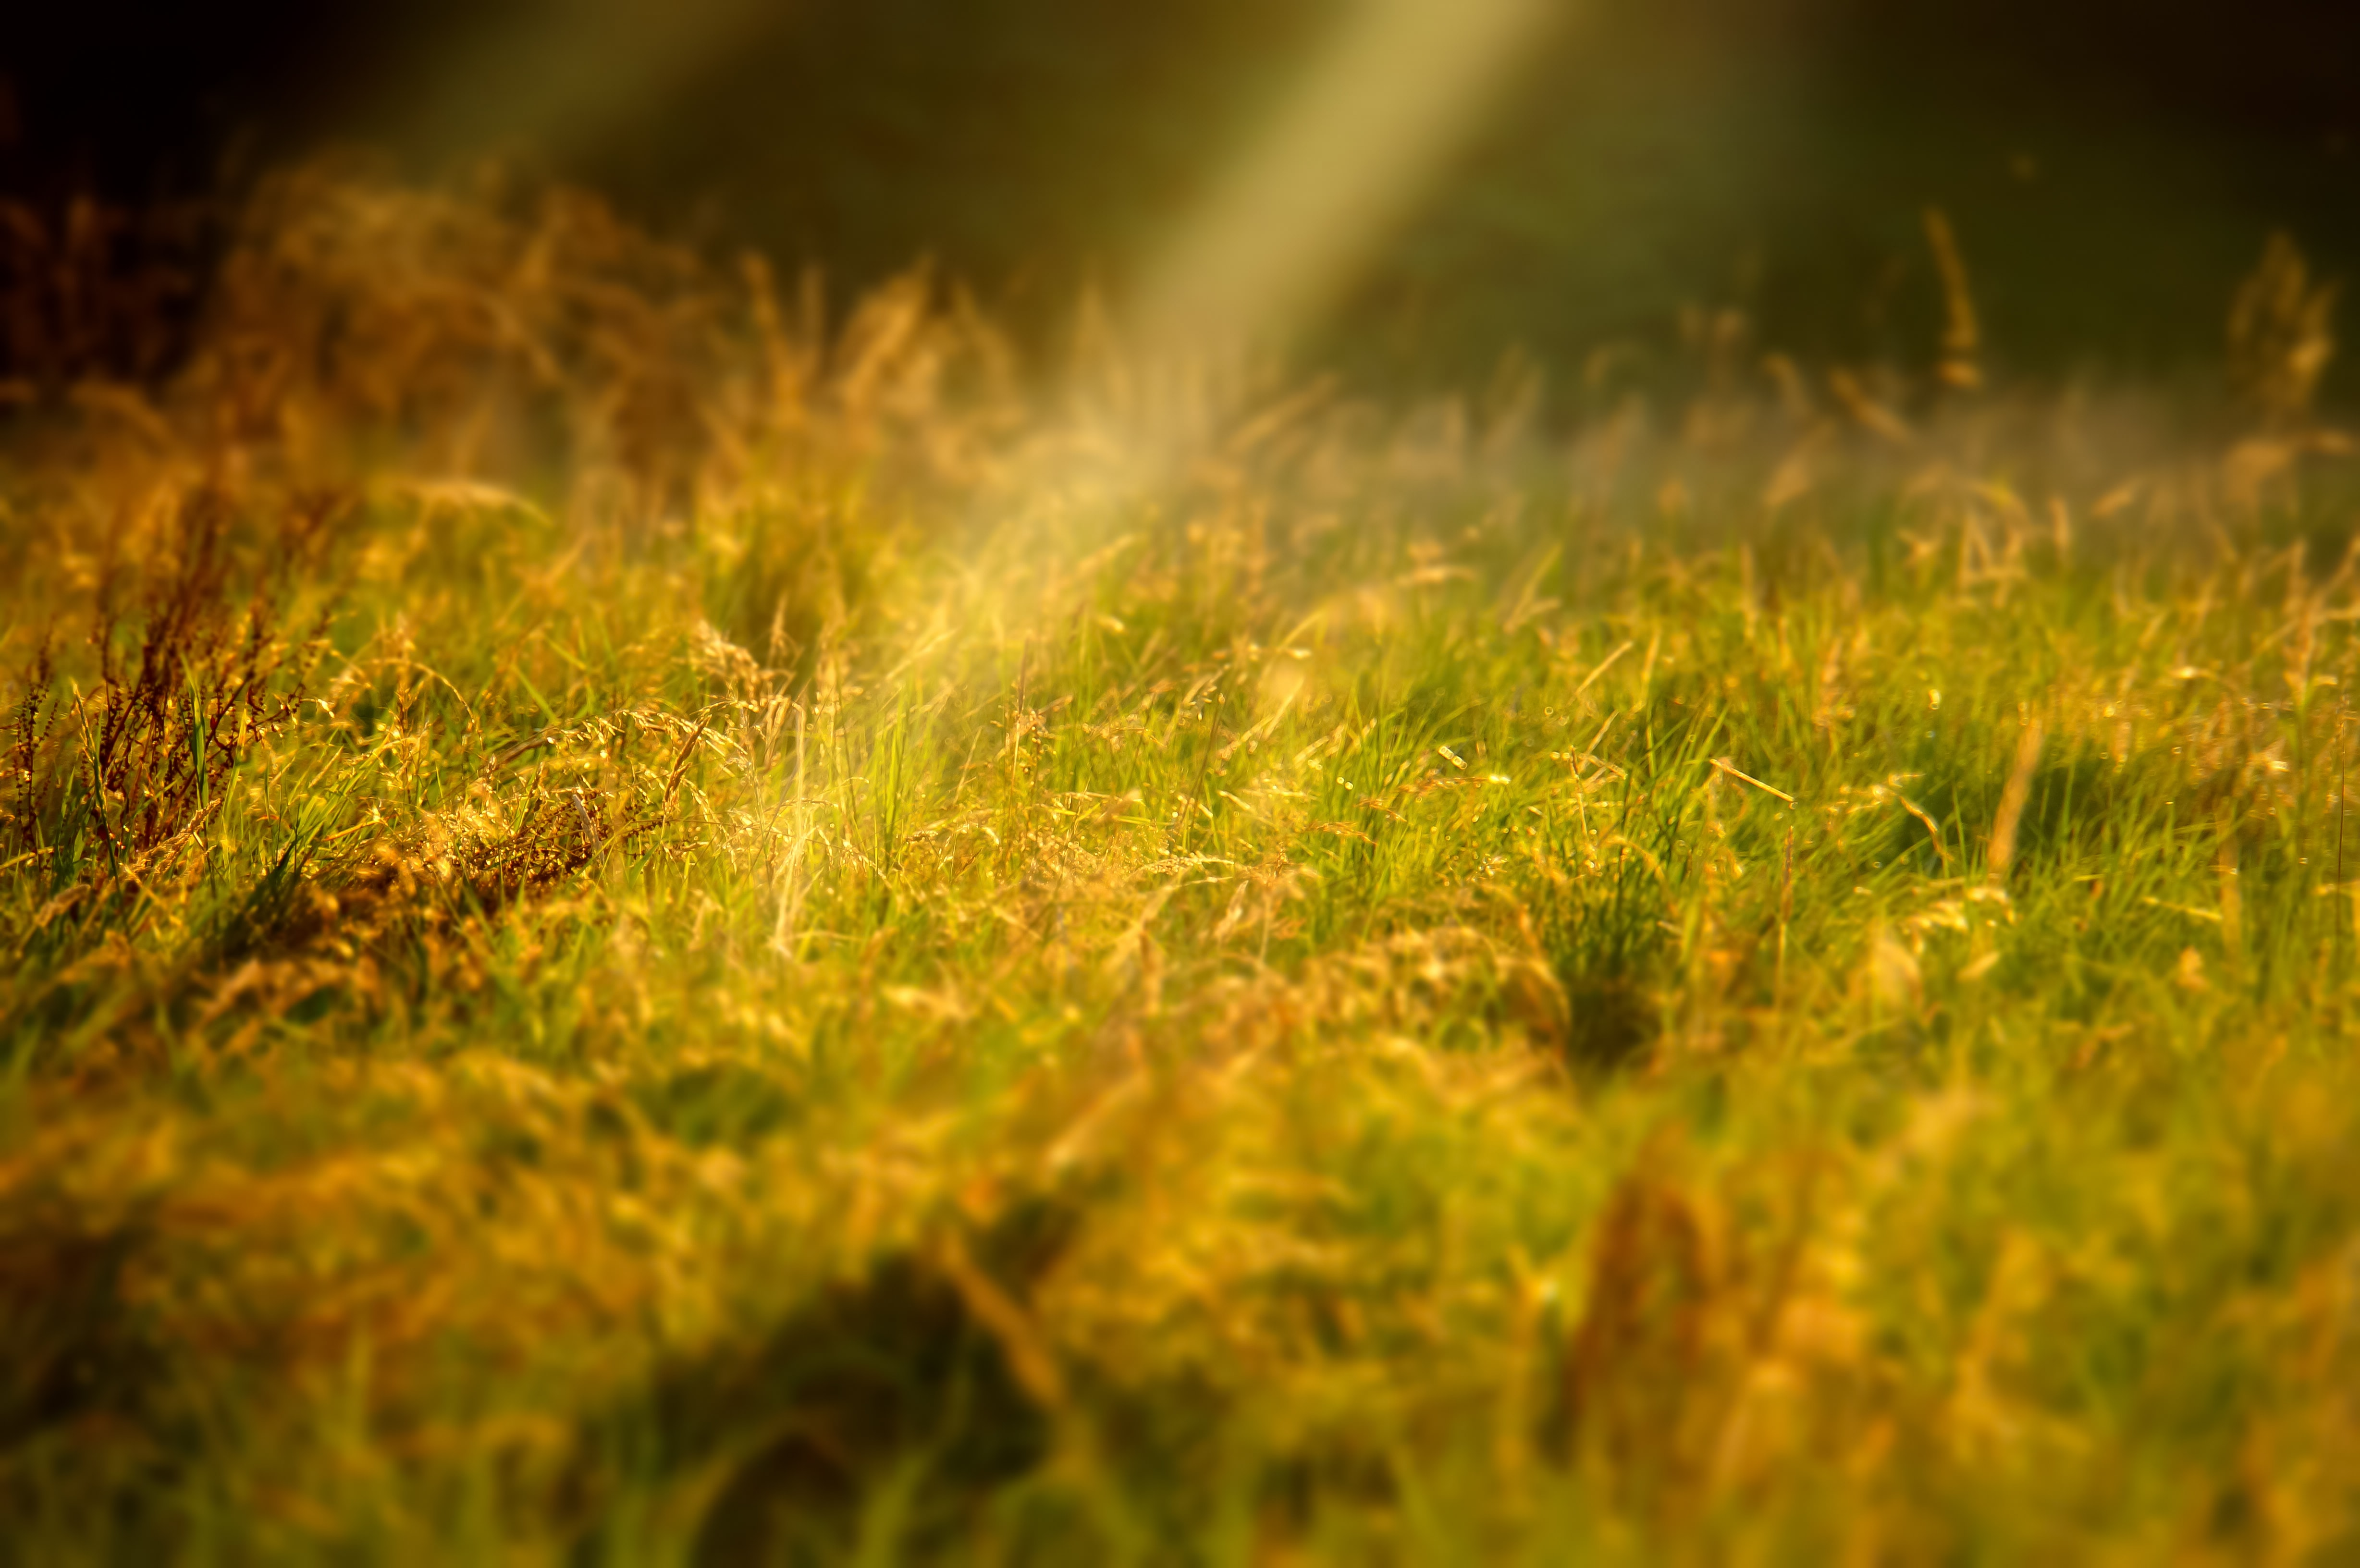 Sun beams glow yellow on a field of grass and flowers